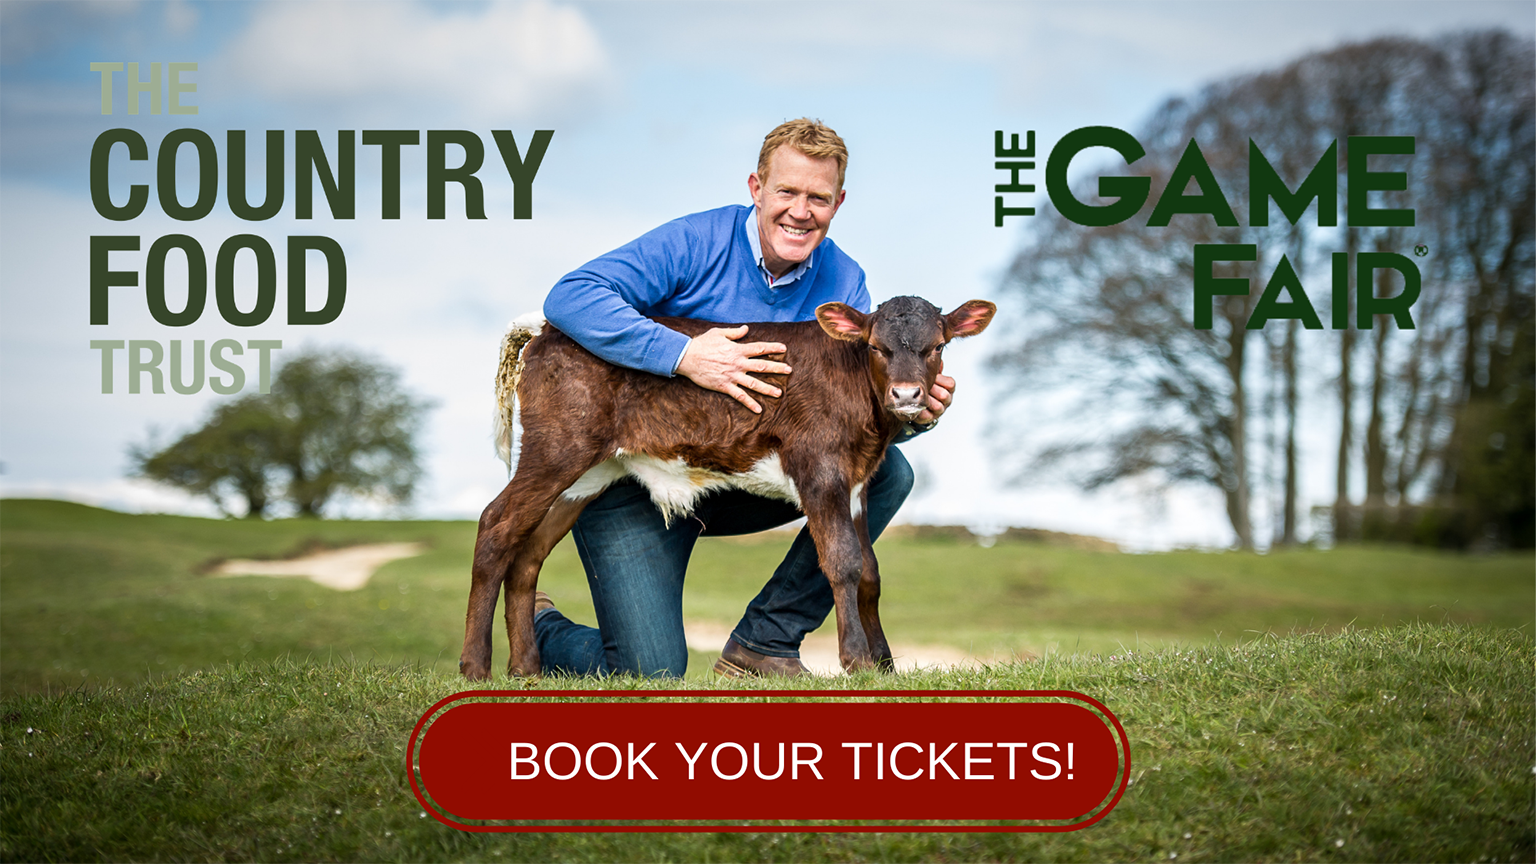 Buy your Game Fair Tickets